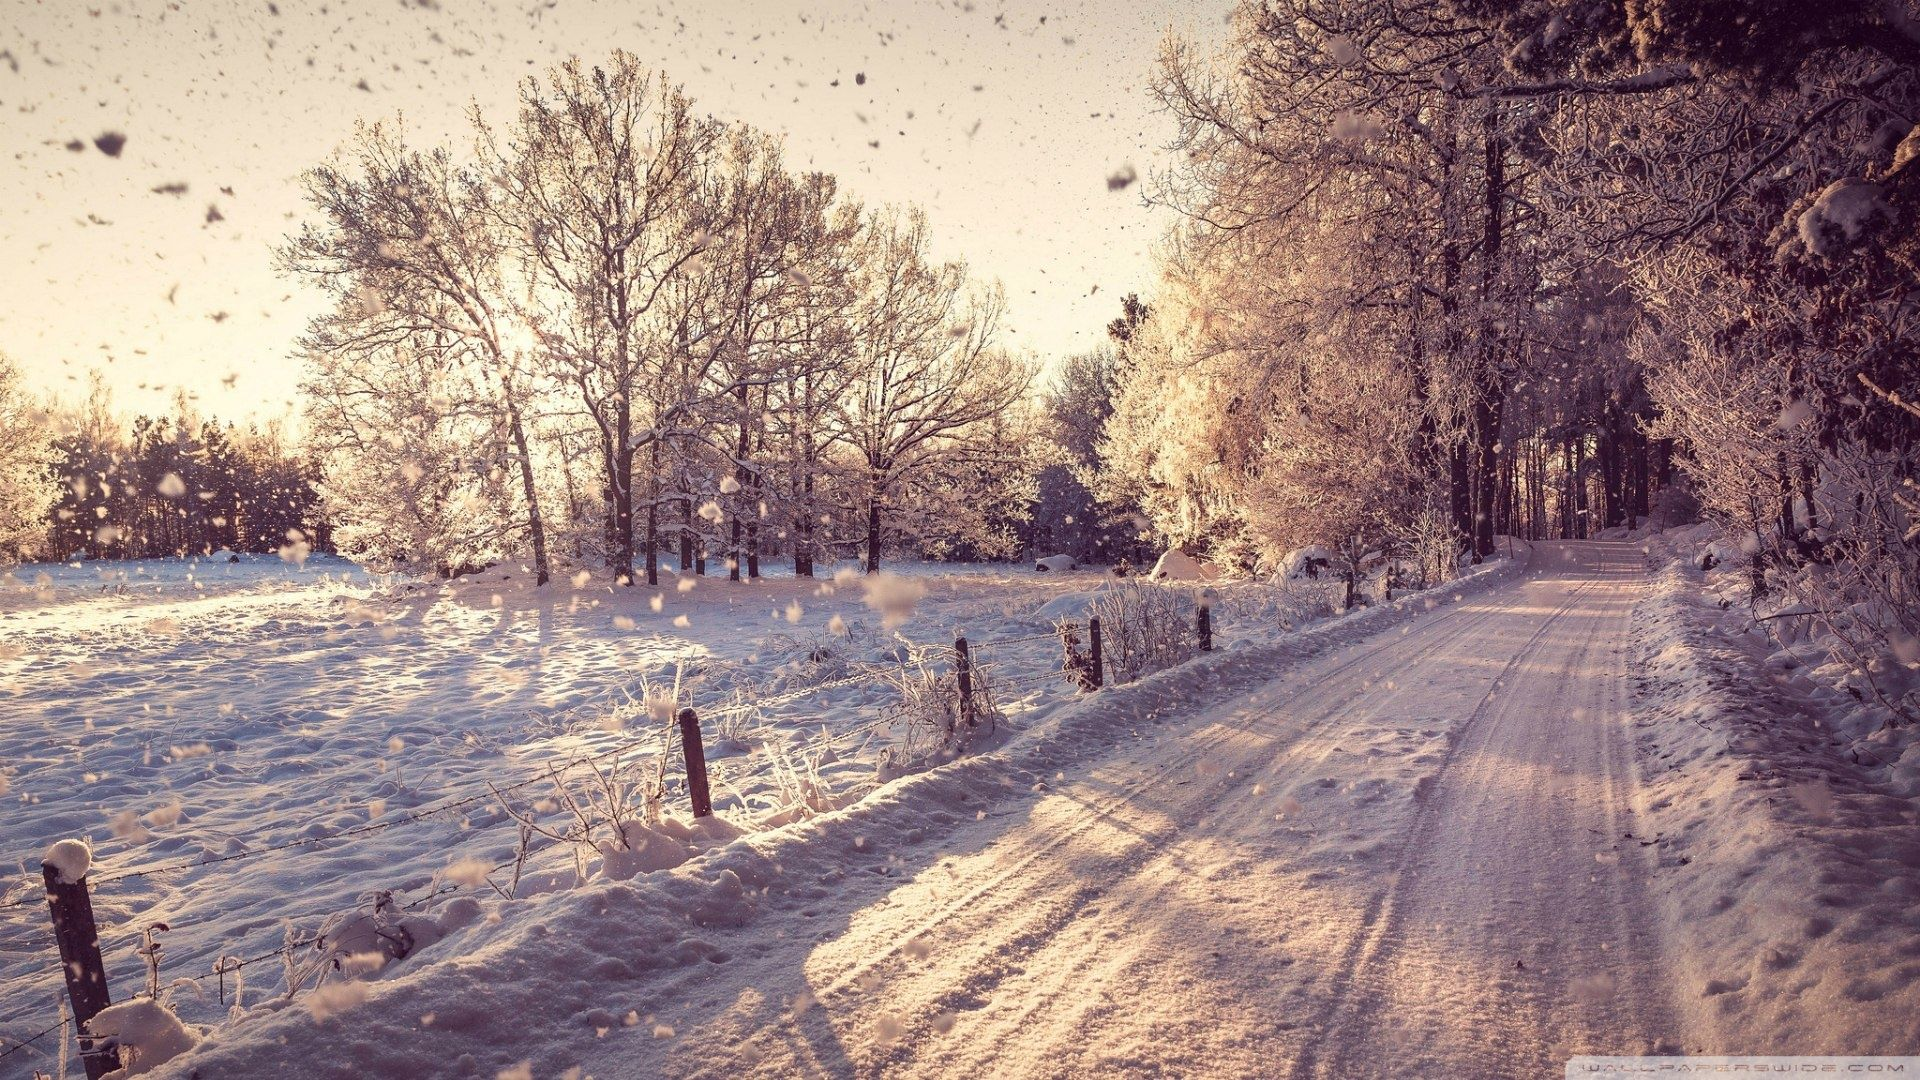 Wallpapers Hd World Winter Snow And Rain Winter Background Winter Wonderland Wallpaper Winter Scenery